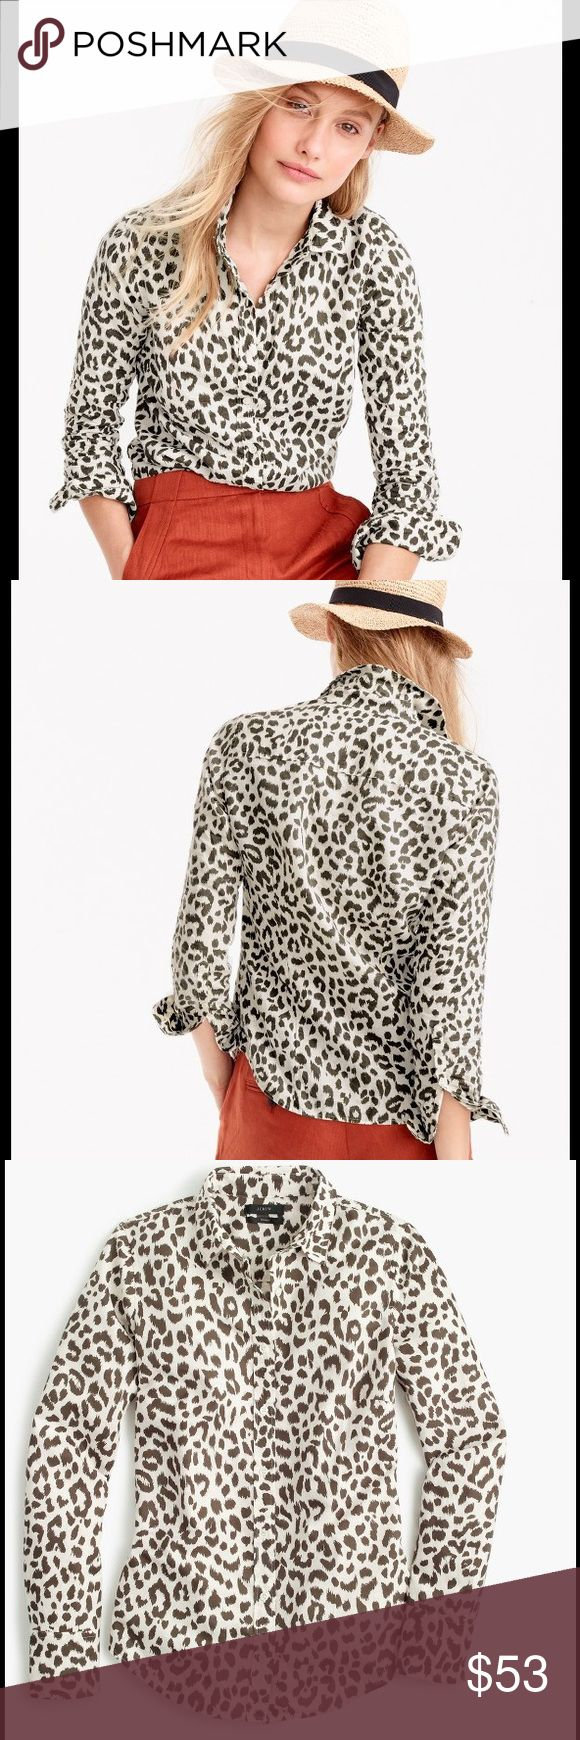 J Crew Cotton-linen shirt leopard print - Size 2 J Crew Cotton-linen perfect shirt in leopard print.  J Crew's perfect shirt features precisely placed darts for a slimming, waist-defining fit that's a bit more tailored. This is super soft cotton-linen blend, then added a watercolor-inspired leopard print for a wild take.  Cotton/linen blend. Long roll-up sleeves. Functional buttons at cuffs. Button placket. Machine wash  🤔 Please ask all questions ✅Use Offer Button 🚭& 🐶😺🐠Free Home…